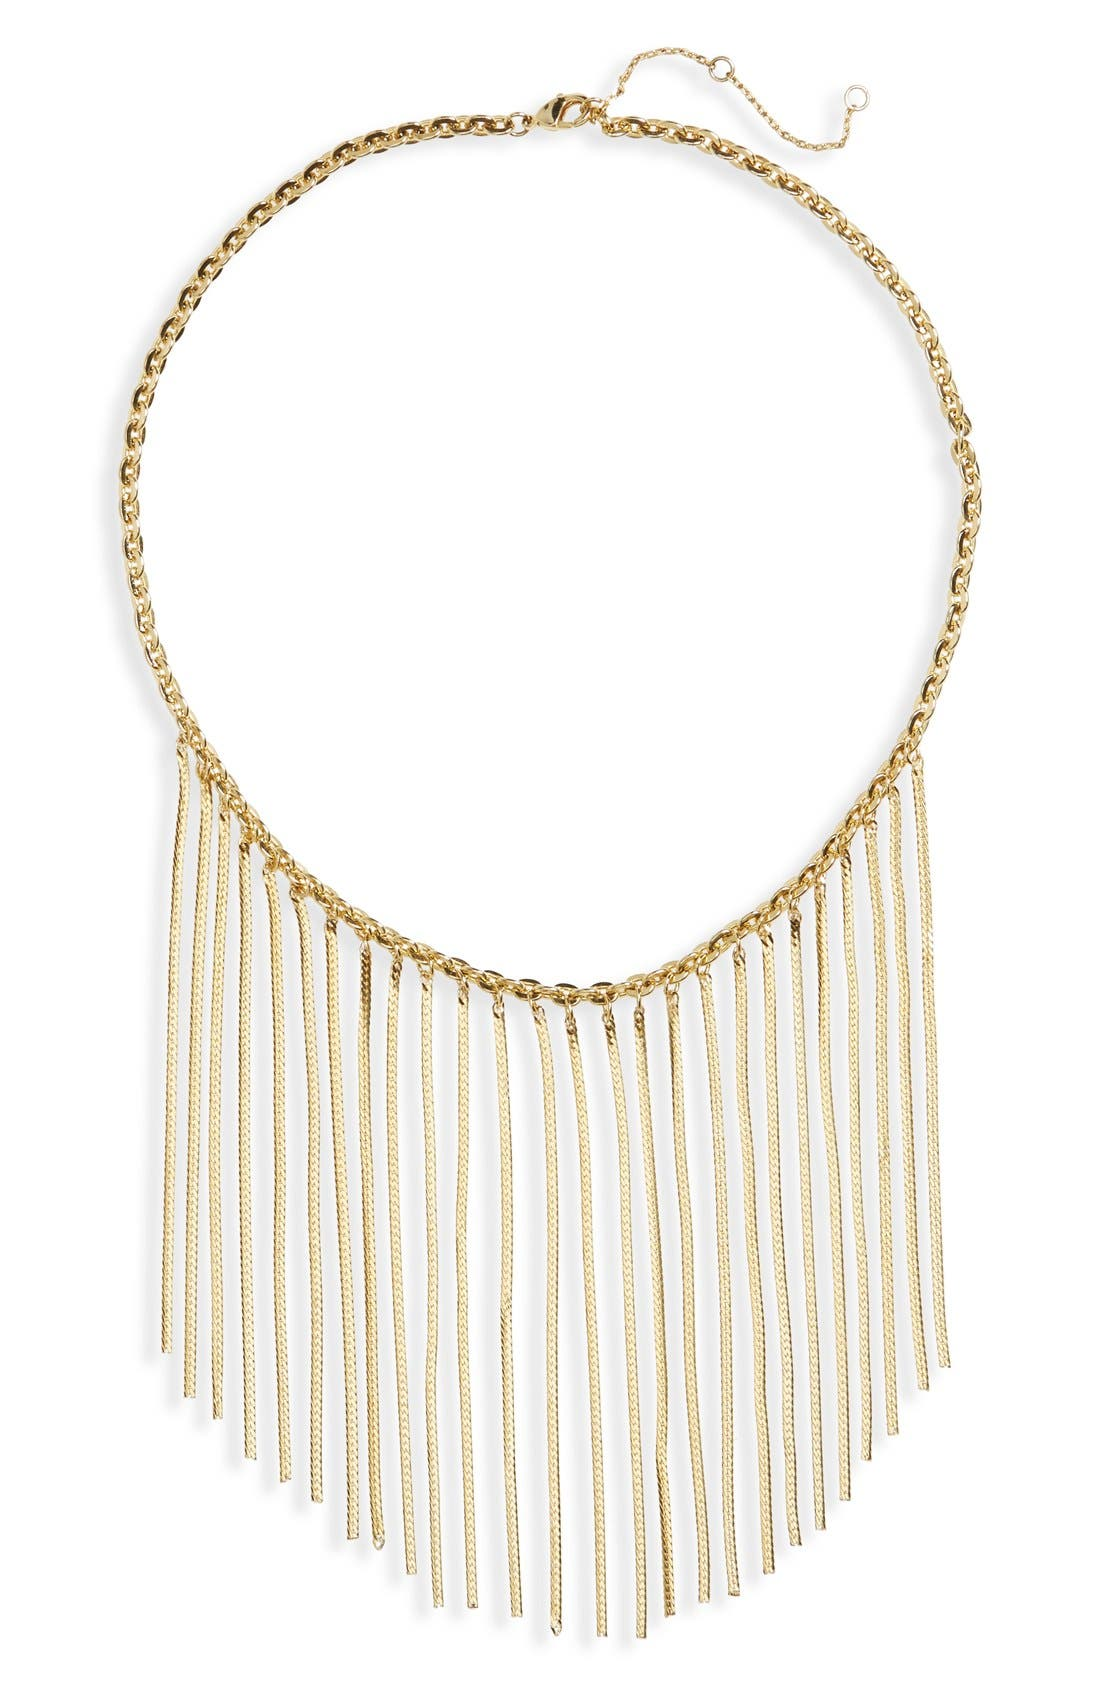 Main Image - Leith Chain Fringe Necklace